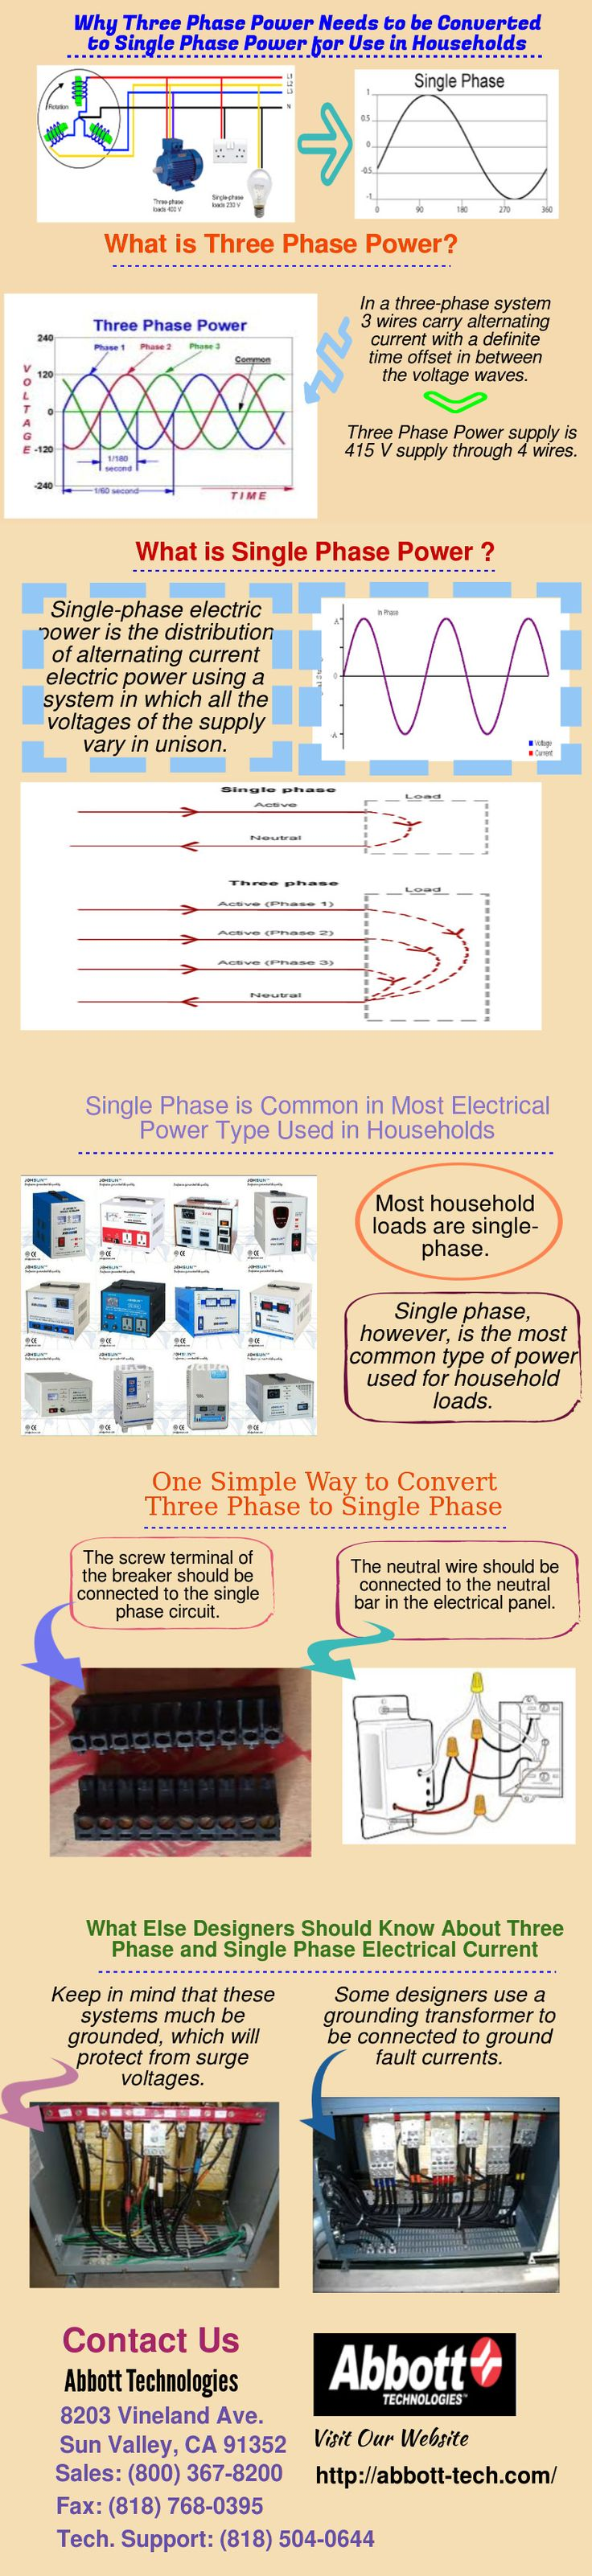 17 best images about it s electric and its my jobâš¡ three phase electric power is the most common form of electrical power that s converted to